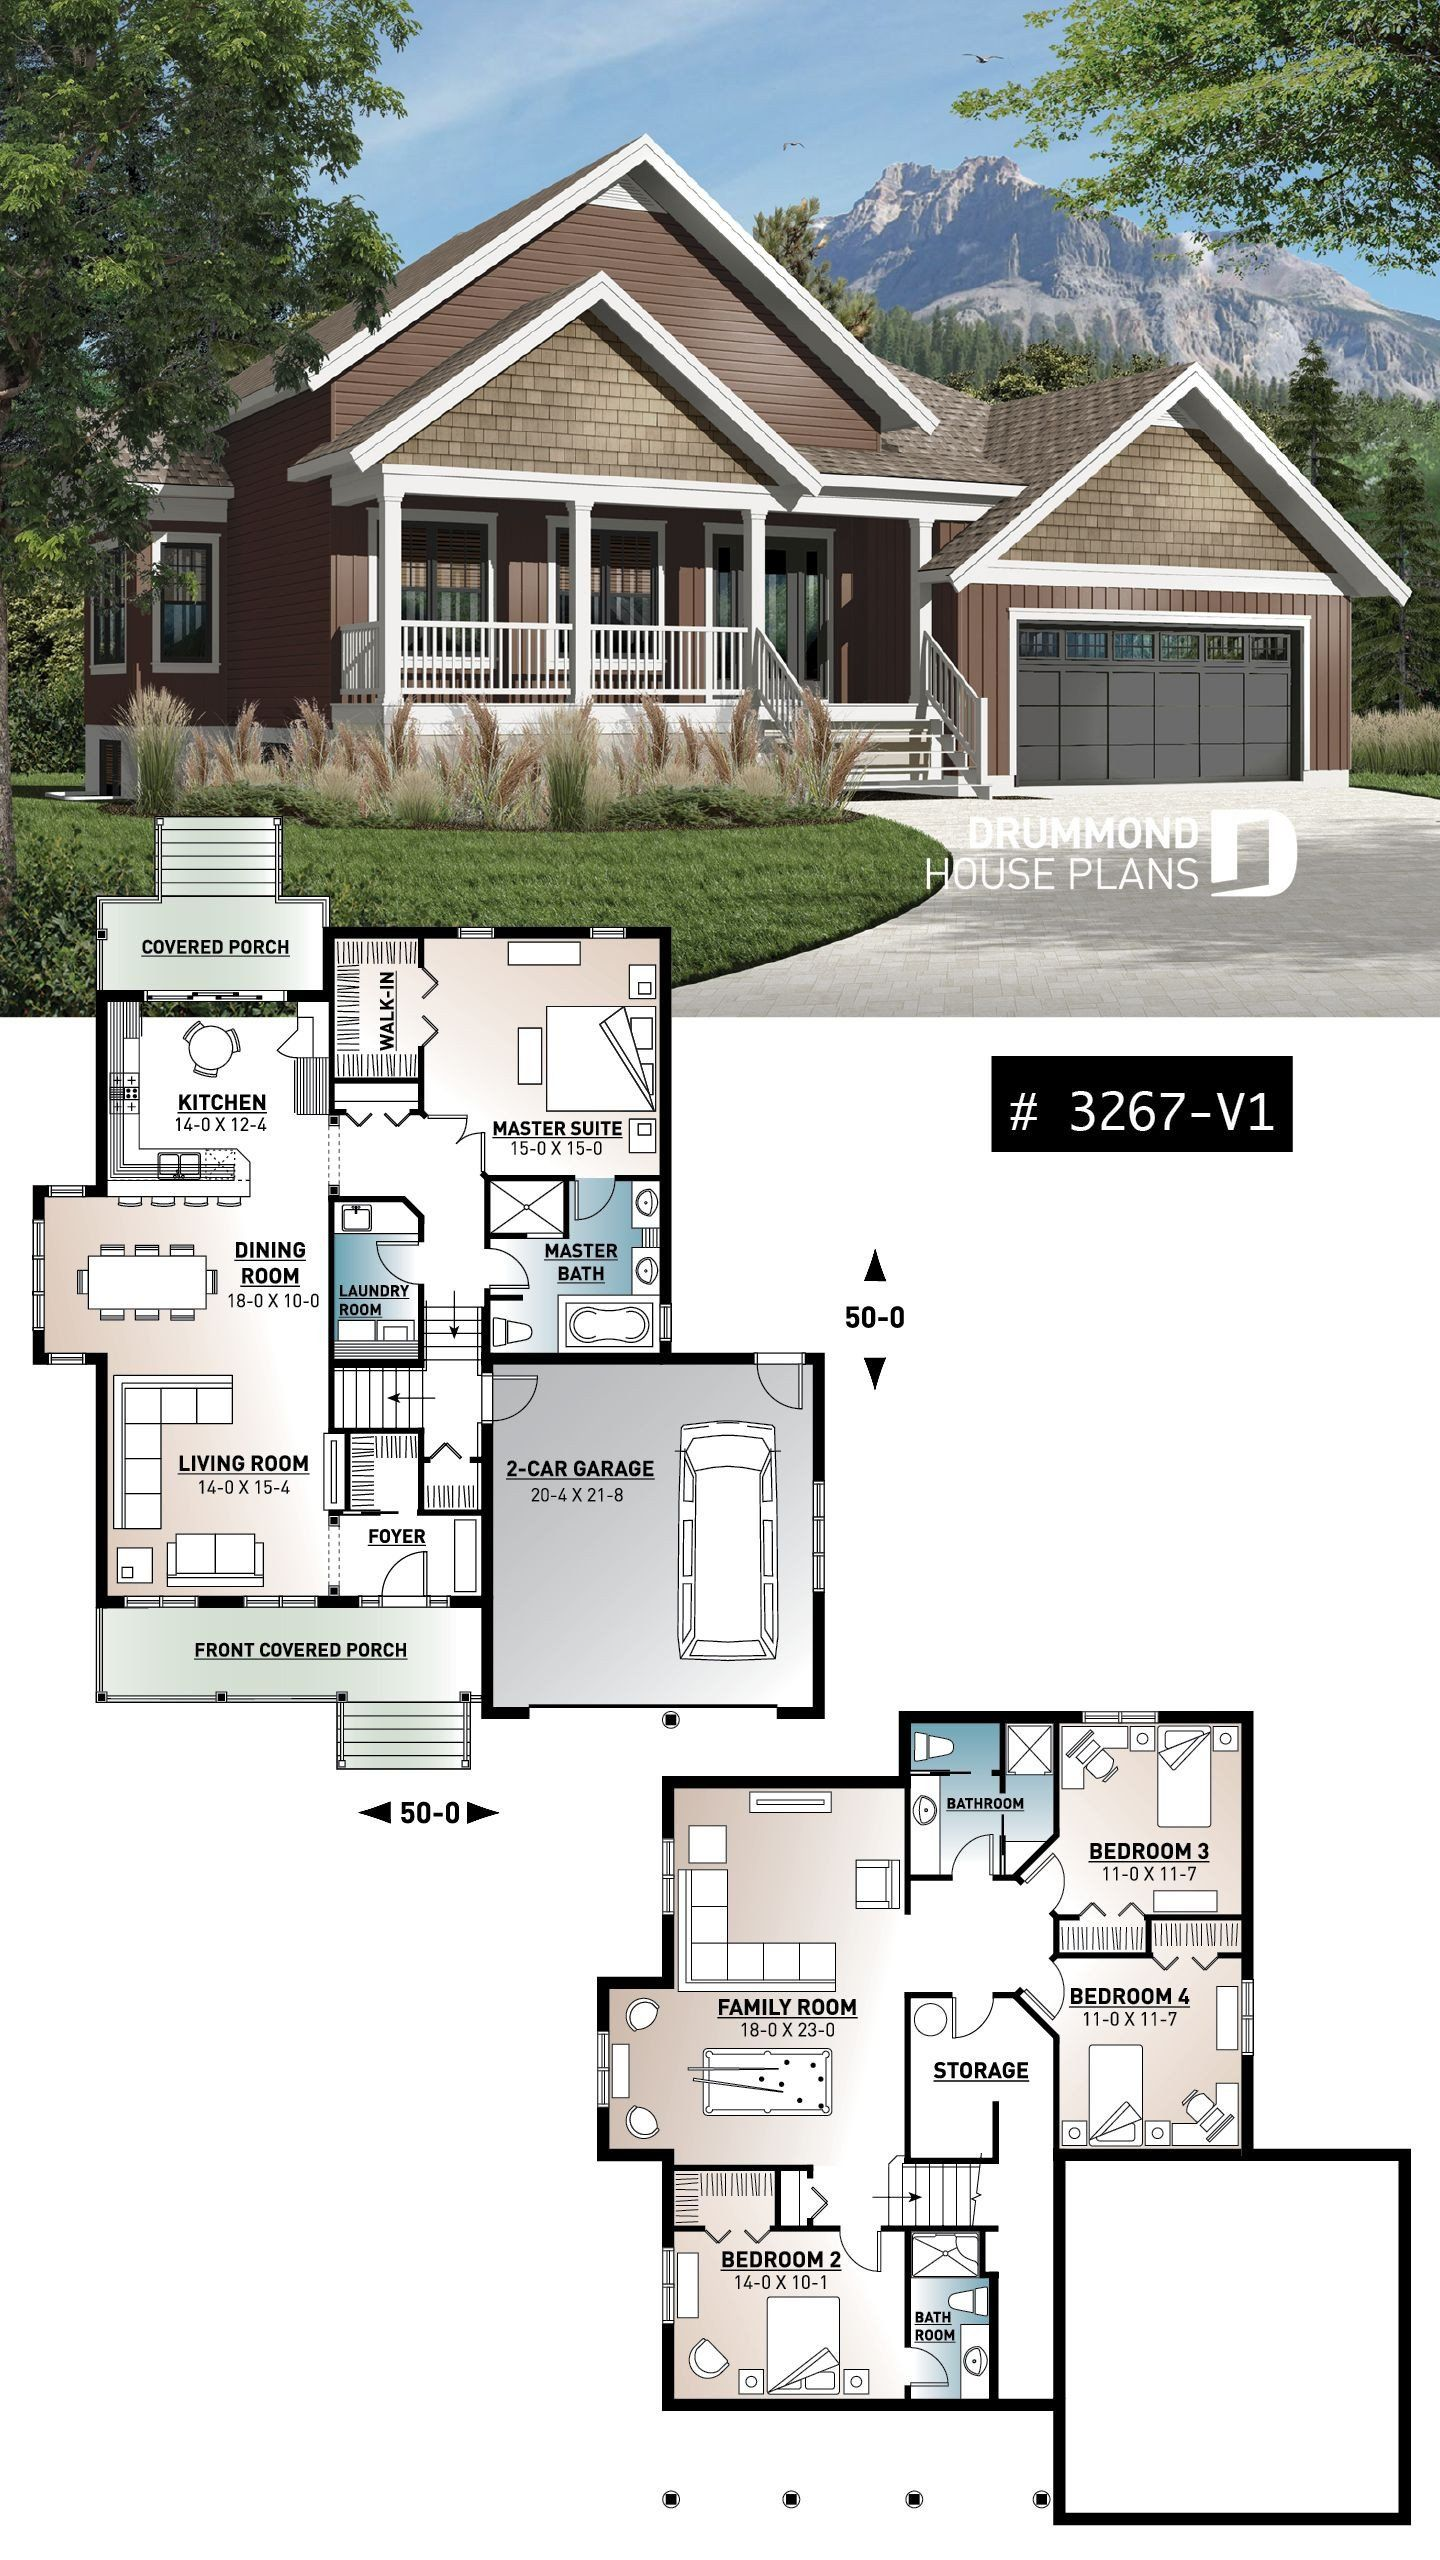 4 Bedroom Bungalow Architectural Design Luxury Craftsman 4 Bedroom Bungalow With Game Room And 2 Living Bungalow House Design House Blueprints House Plans